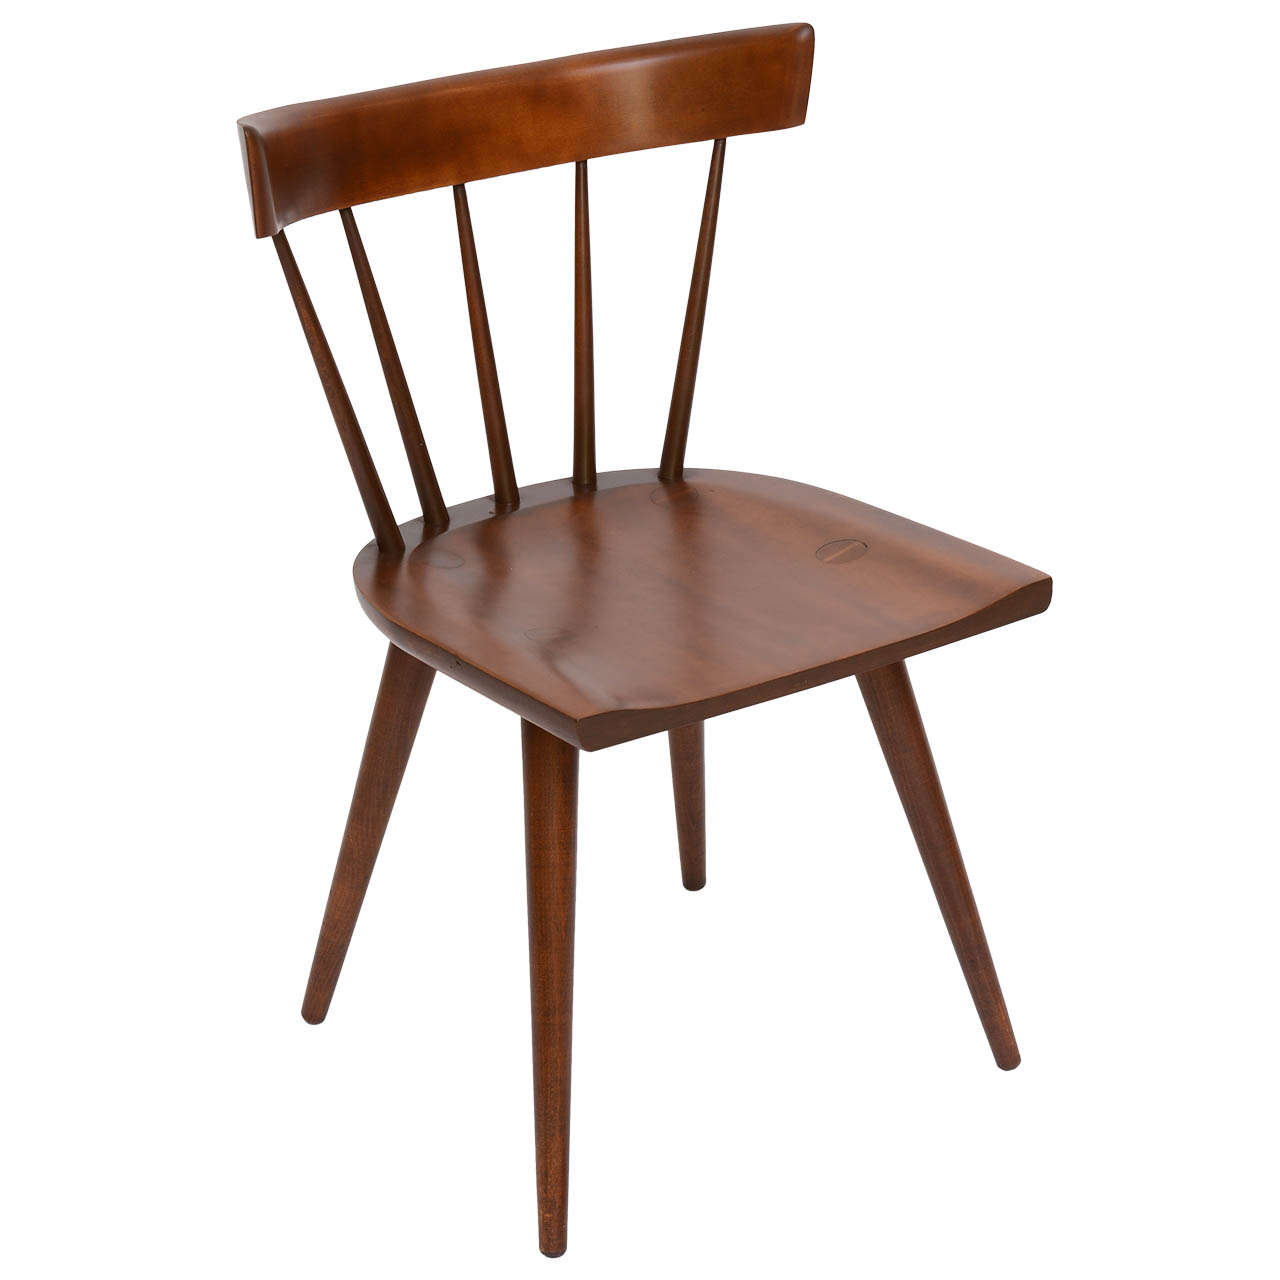 Single paul mccobb spindle back chair in dark maple at 1stdibs for Single dining room chairs